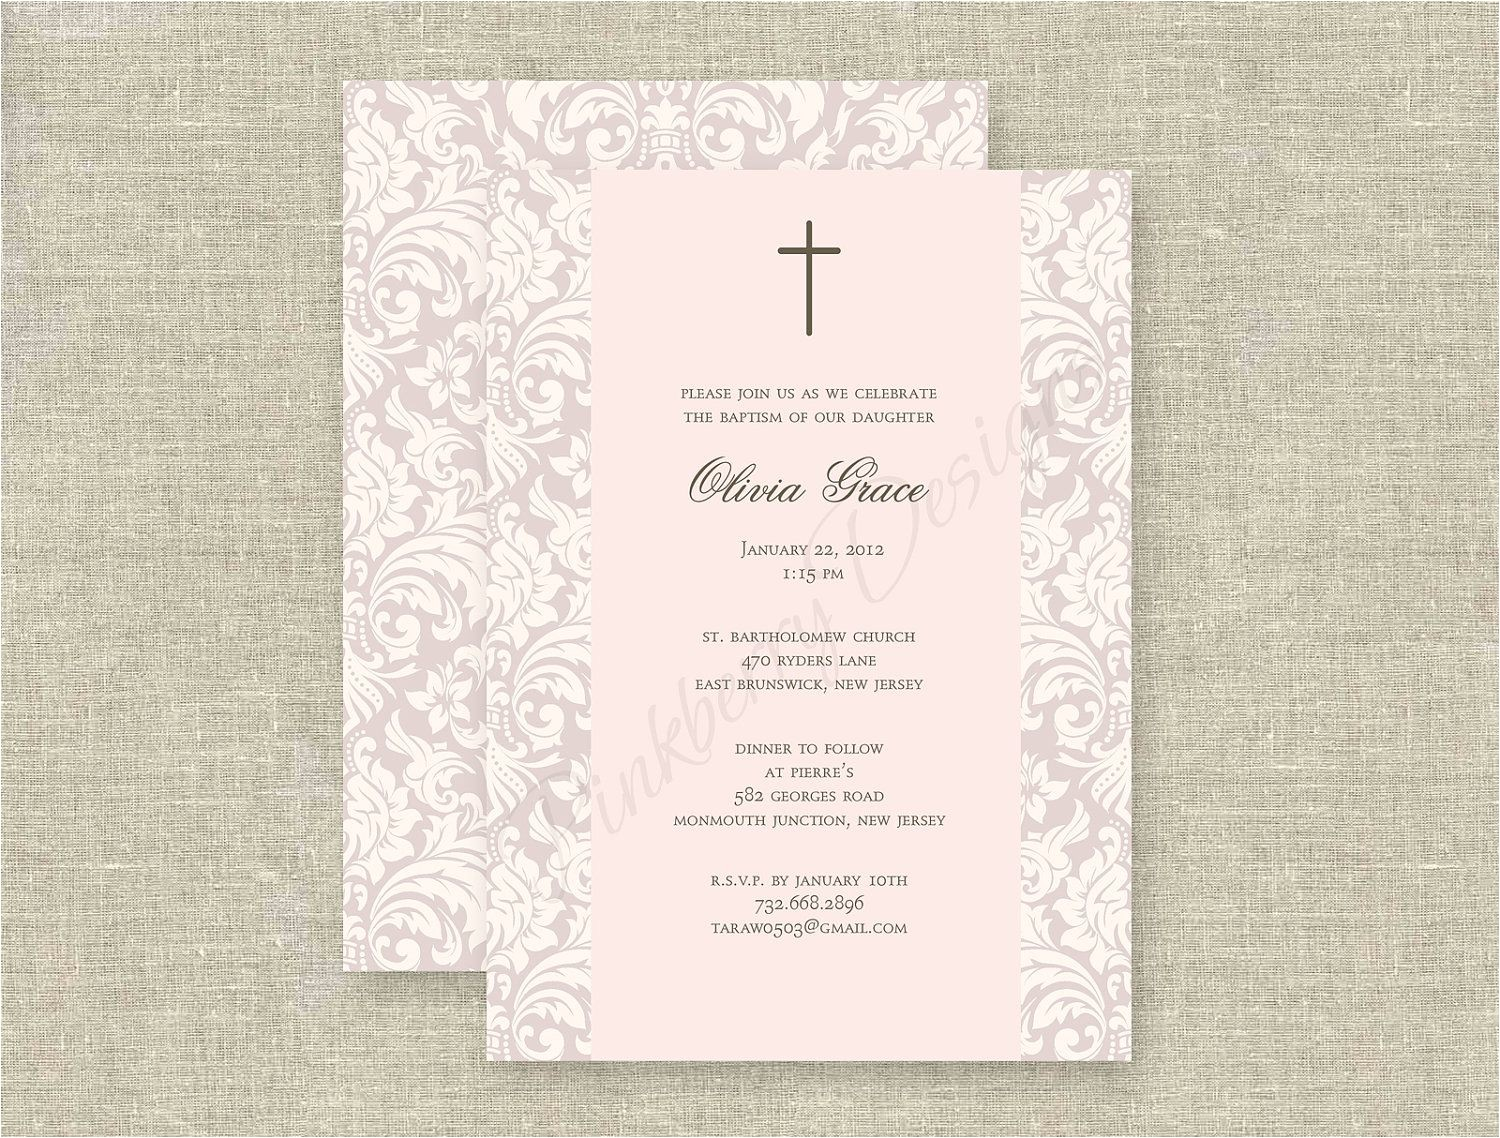 Invitations for Baptism In Spanish Baptism Invitations In Spanish Baptism Invitations In